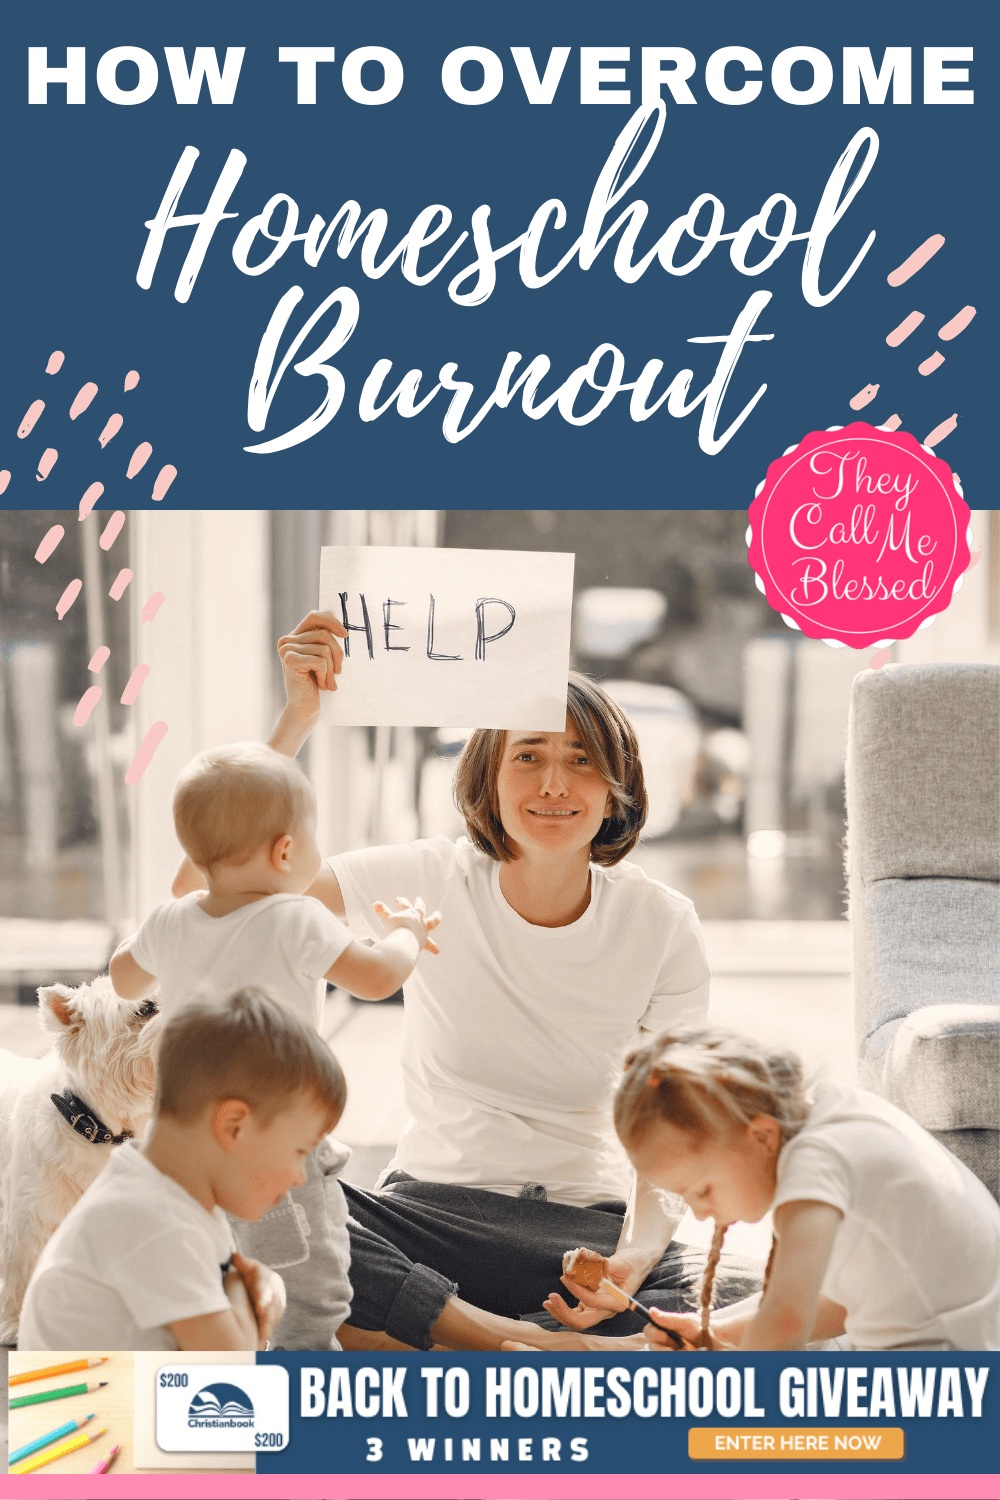 How to Overcome Homeschool Burnout